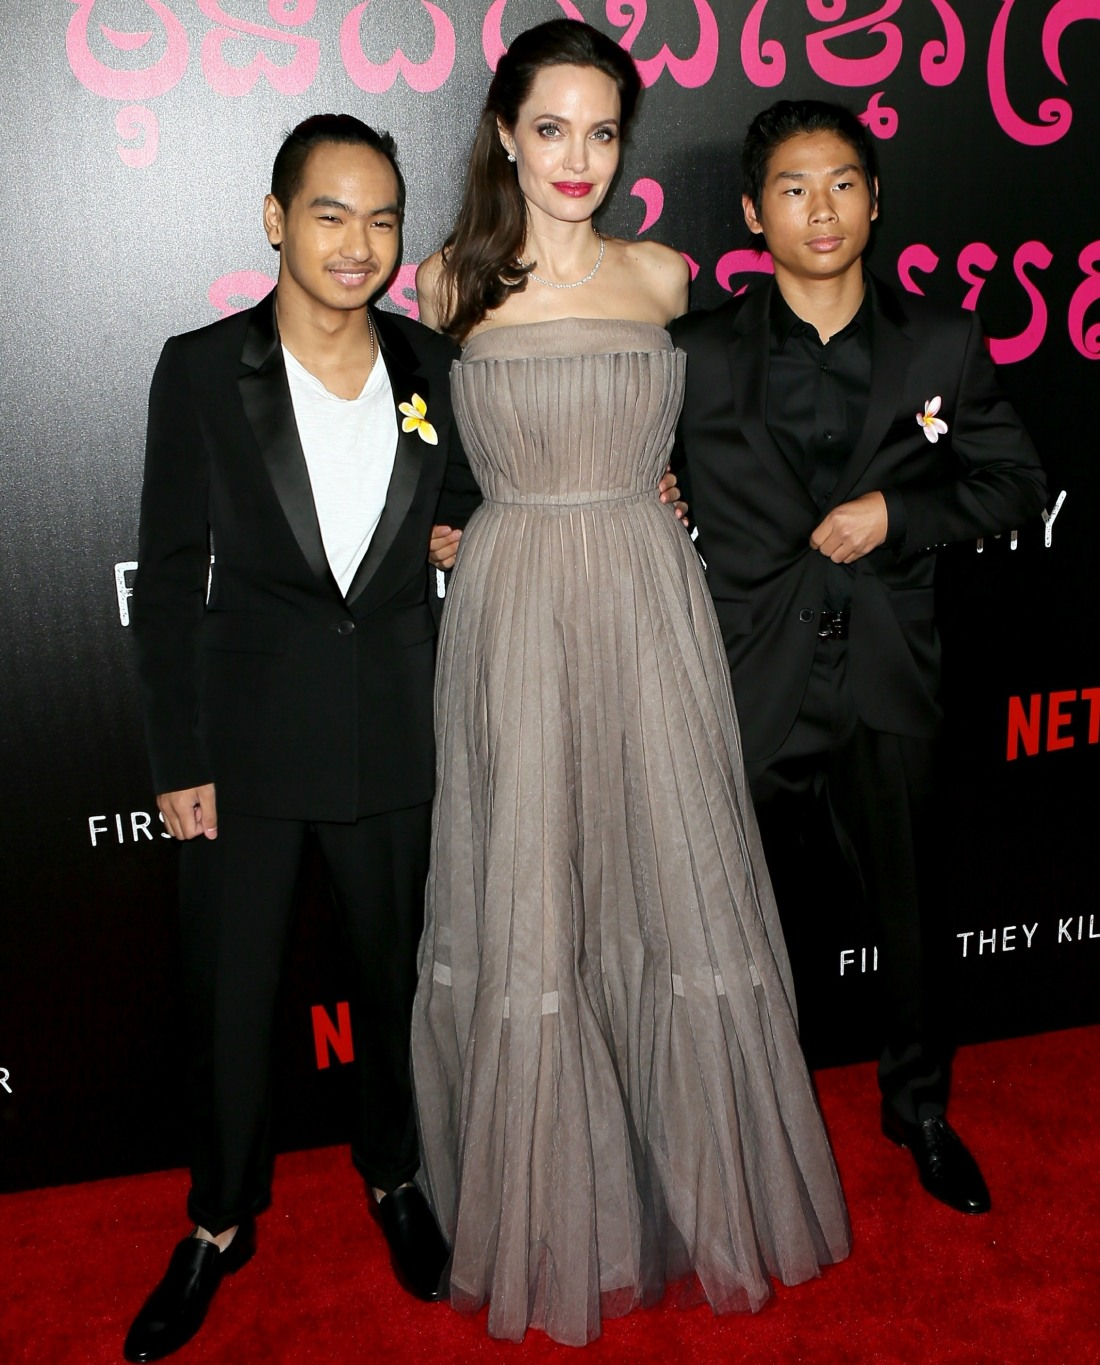 Angelina Jolie and family arrive at the 'First They Killed My Father' NYC screening